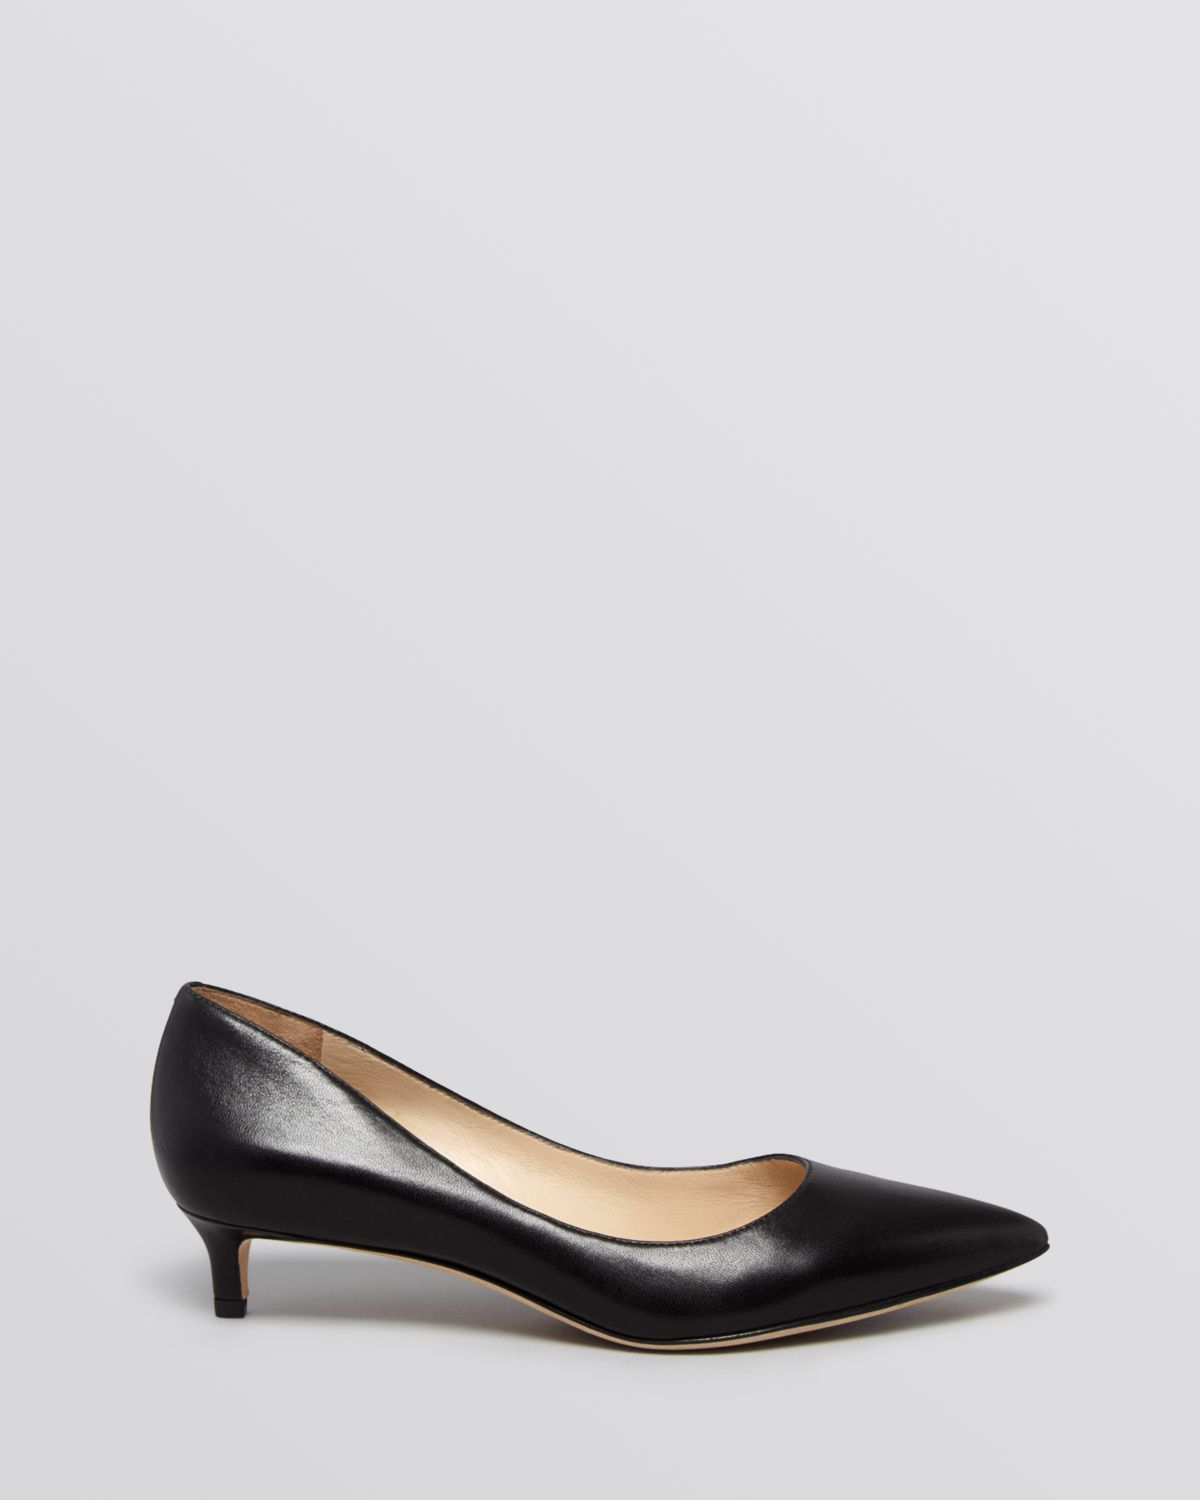 Lyst - Via spiga Pointed Toe Pumps - Hue Kitten Heel in Black